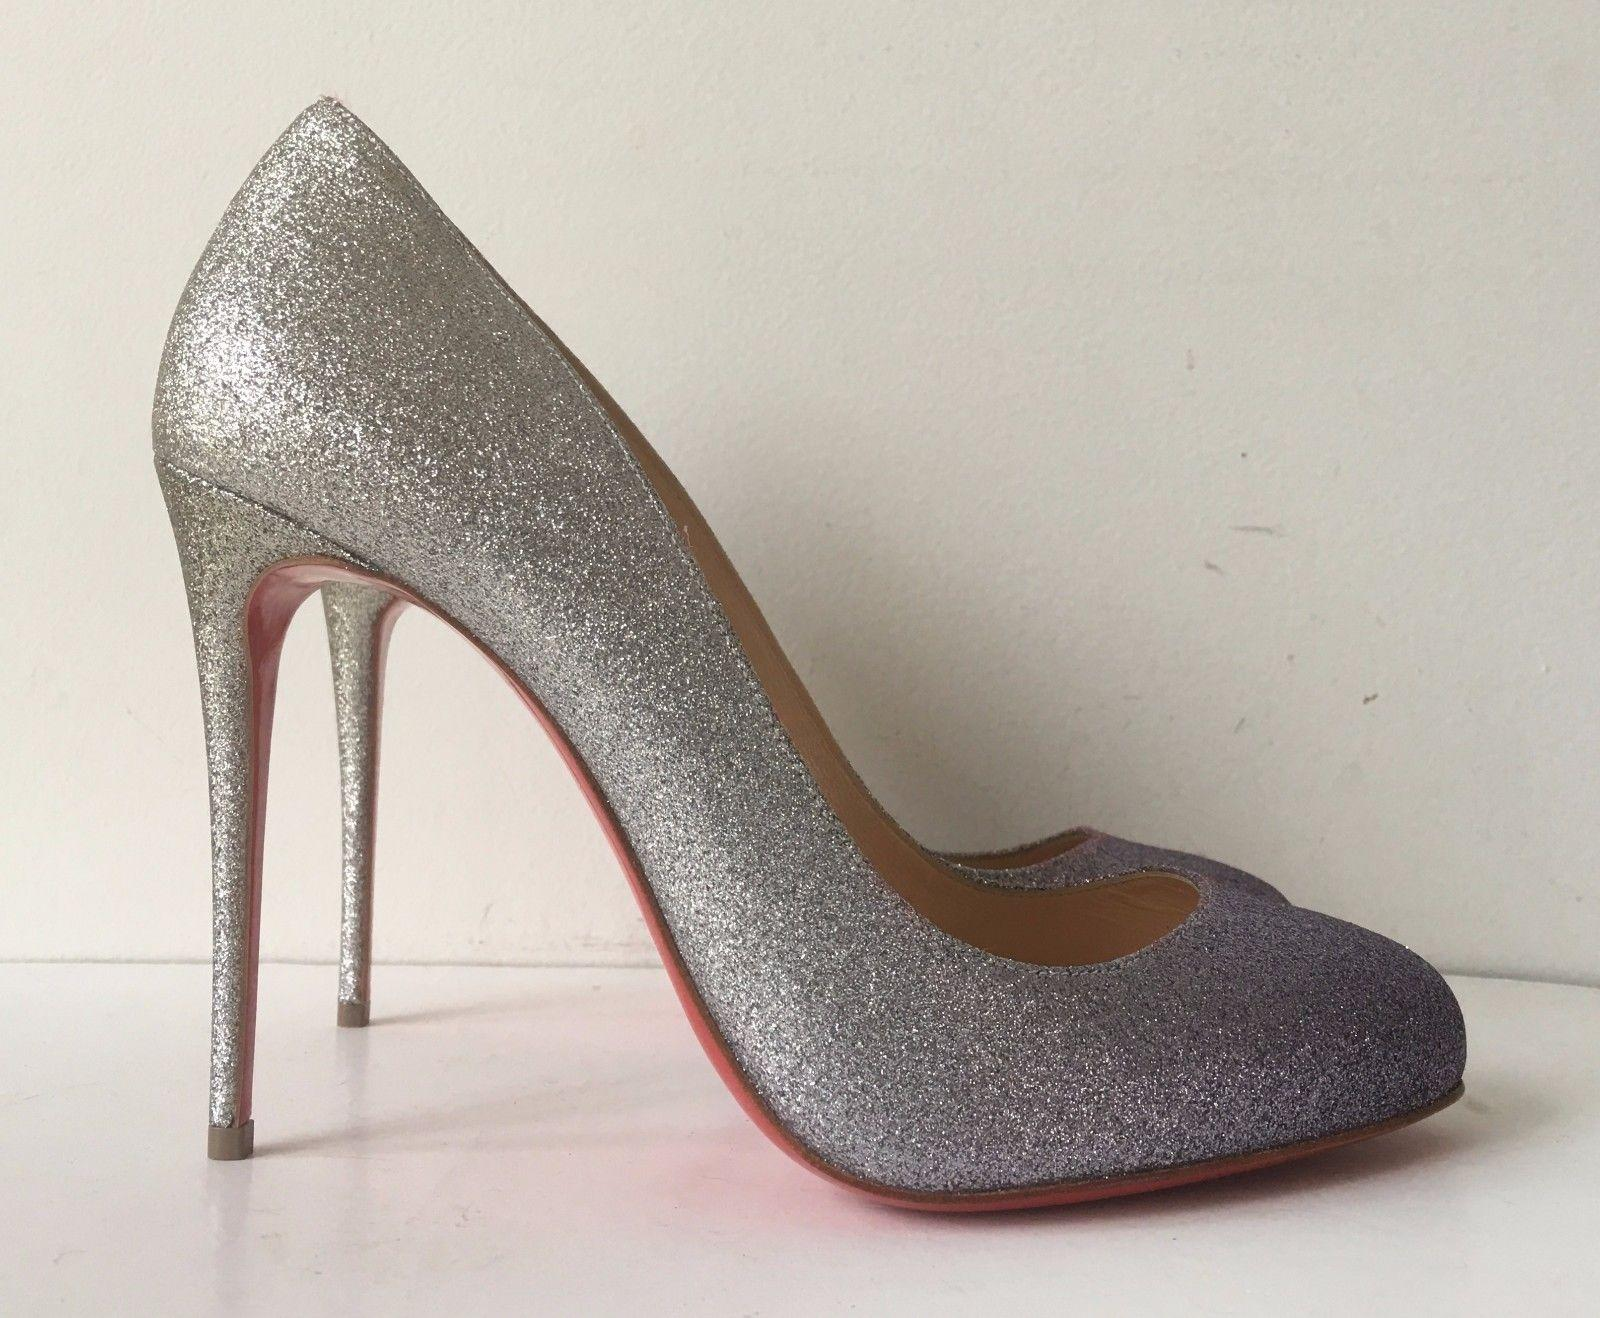 release dates sale online supply for sale Christian Louboutin Dorissima 100 Glitter Pumps w/ Tags pick a best for sale lLLkoPz